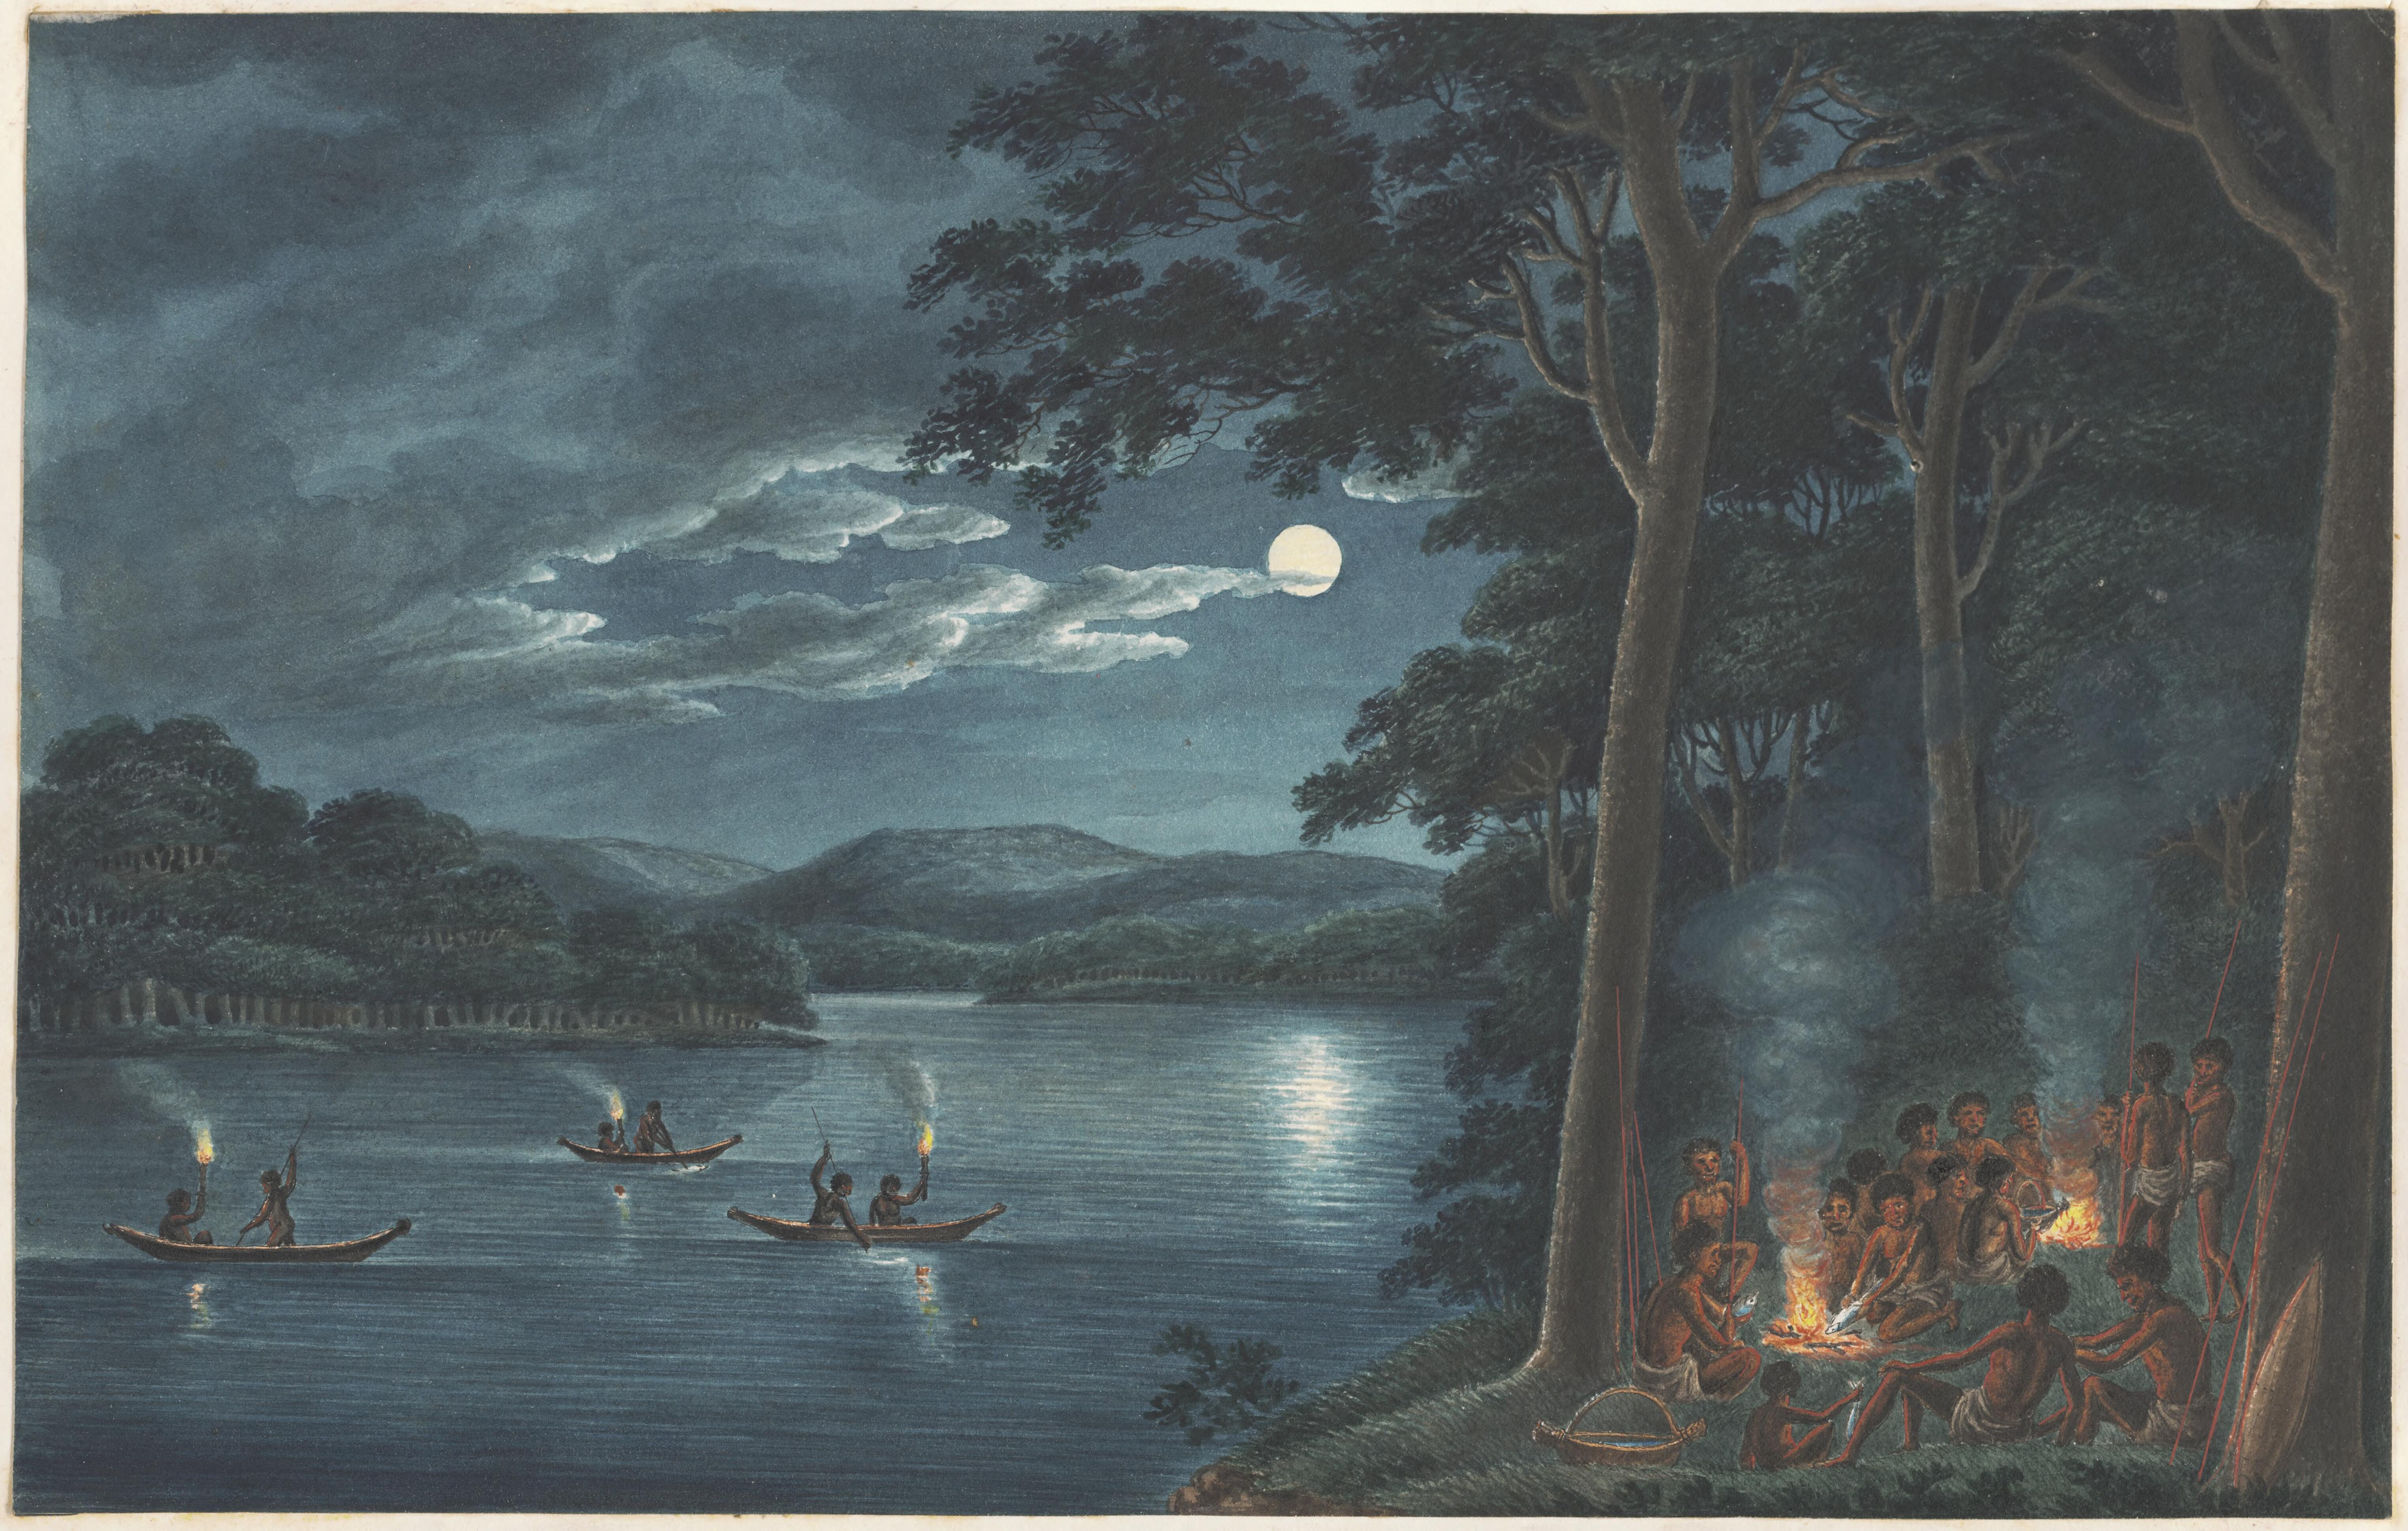 Digital Copy of Aborigines Night Fishing By Torches ca. 1817 Painting by Joseph Lycett